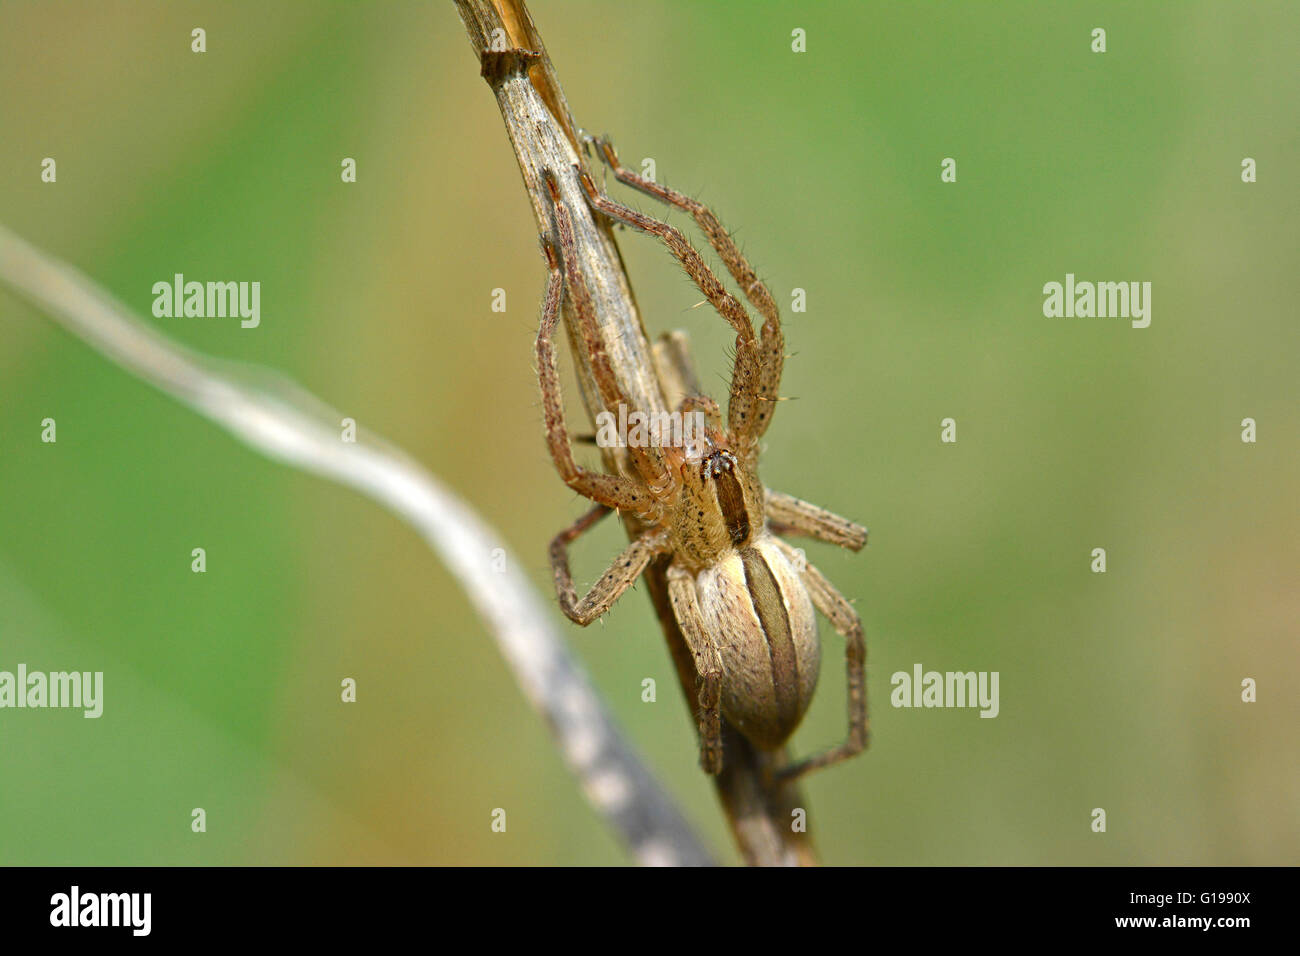 Spider camouflage - Stock Image